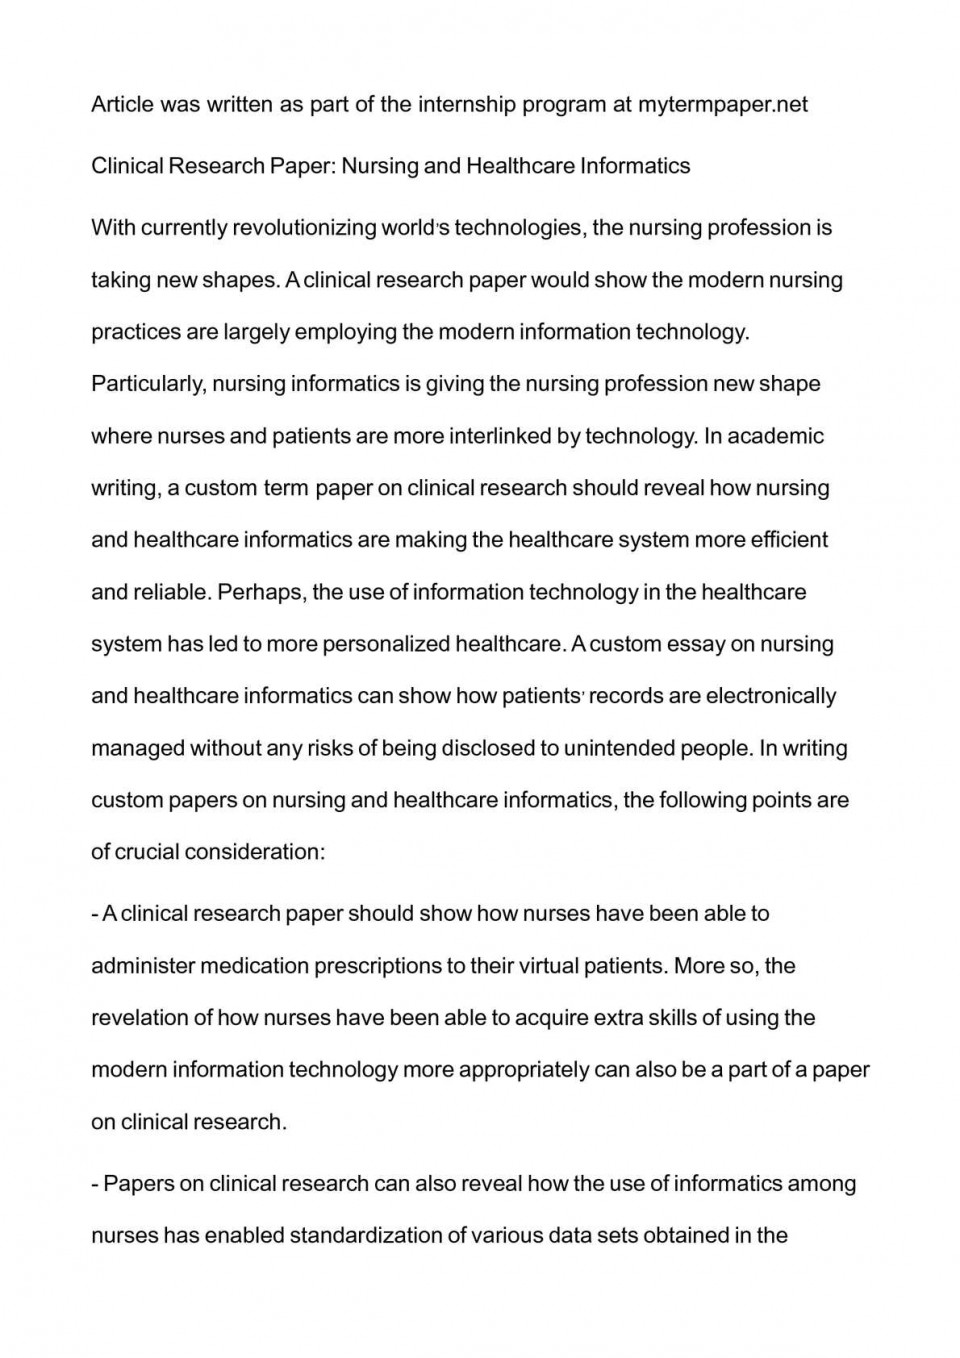 010 Research Paper Nursing Sensational On Home Abuse And Neglect Career Outline Burnout 960